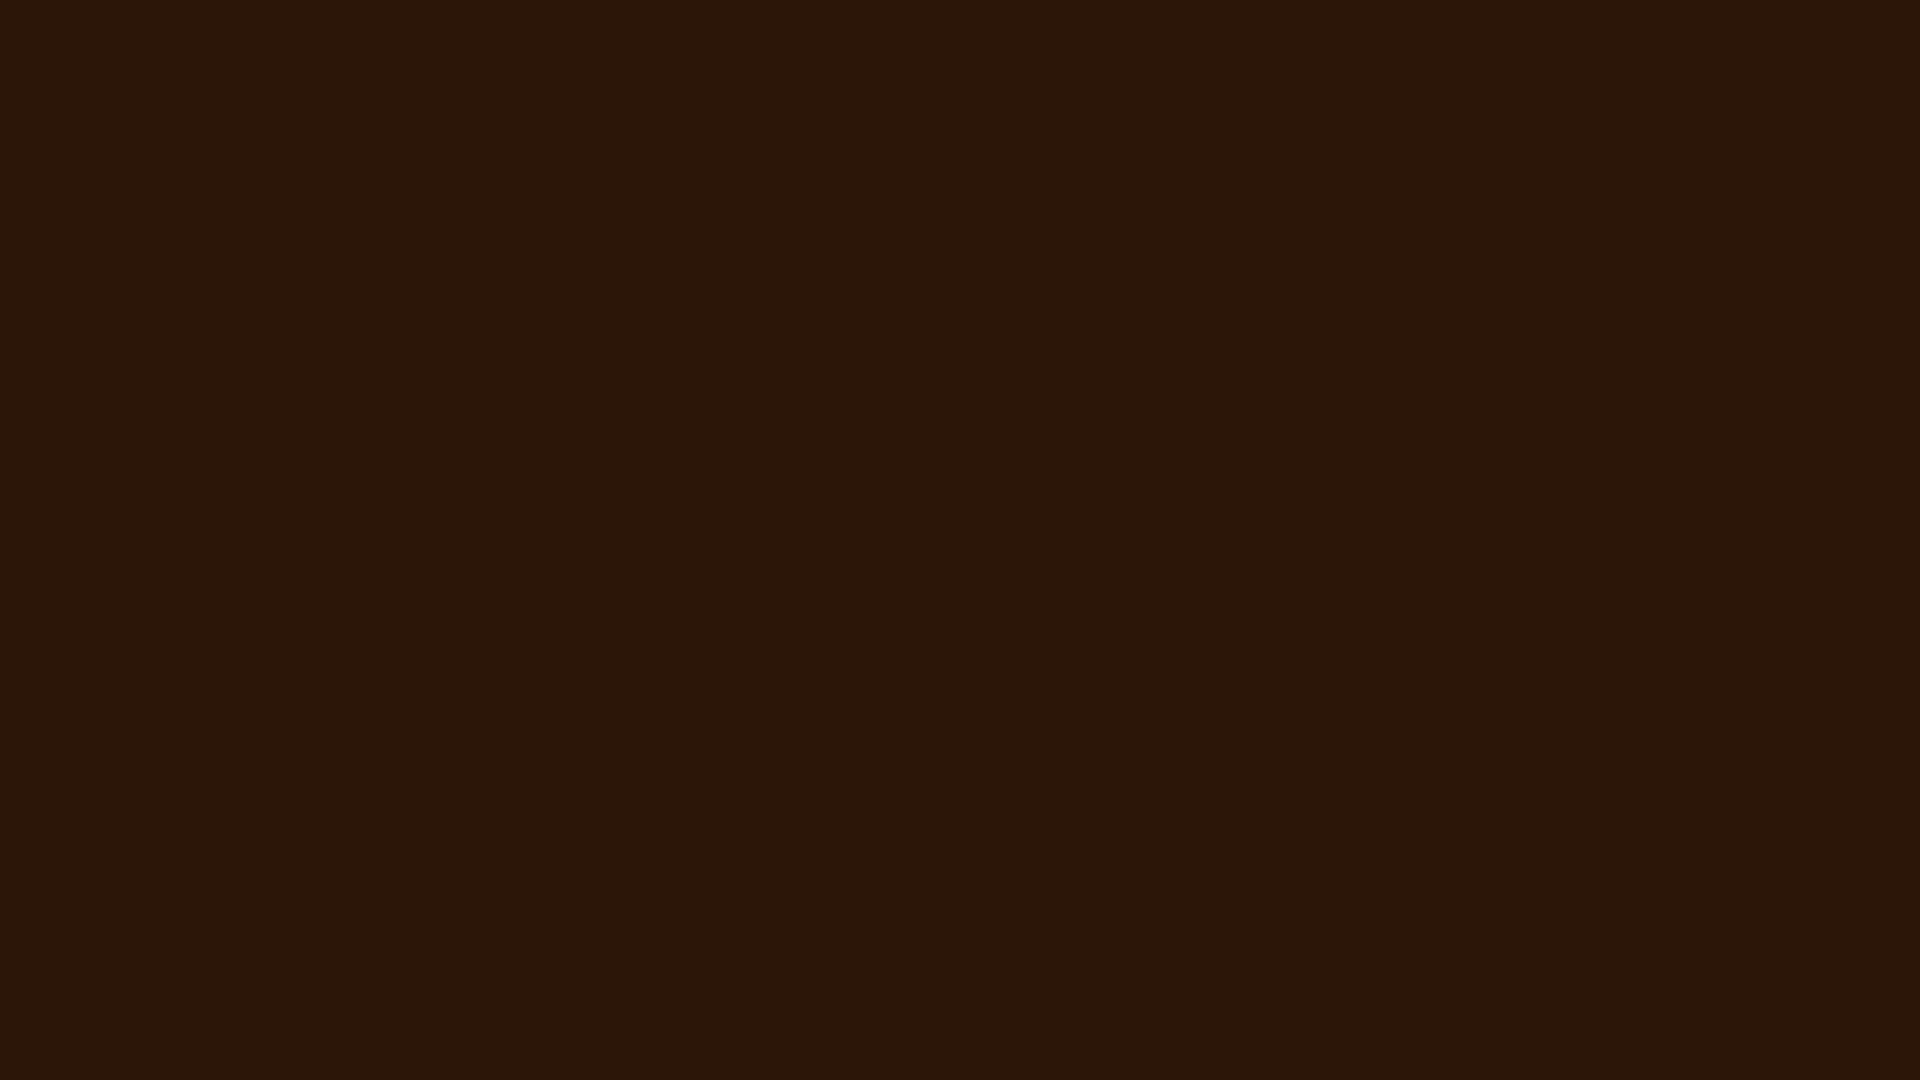 Privacy Policy >> 1920x1080 Zinnwaldite Brown Solid Color Background